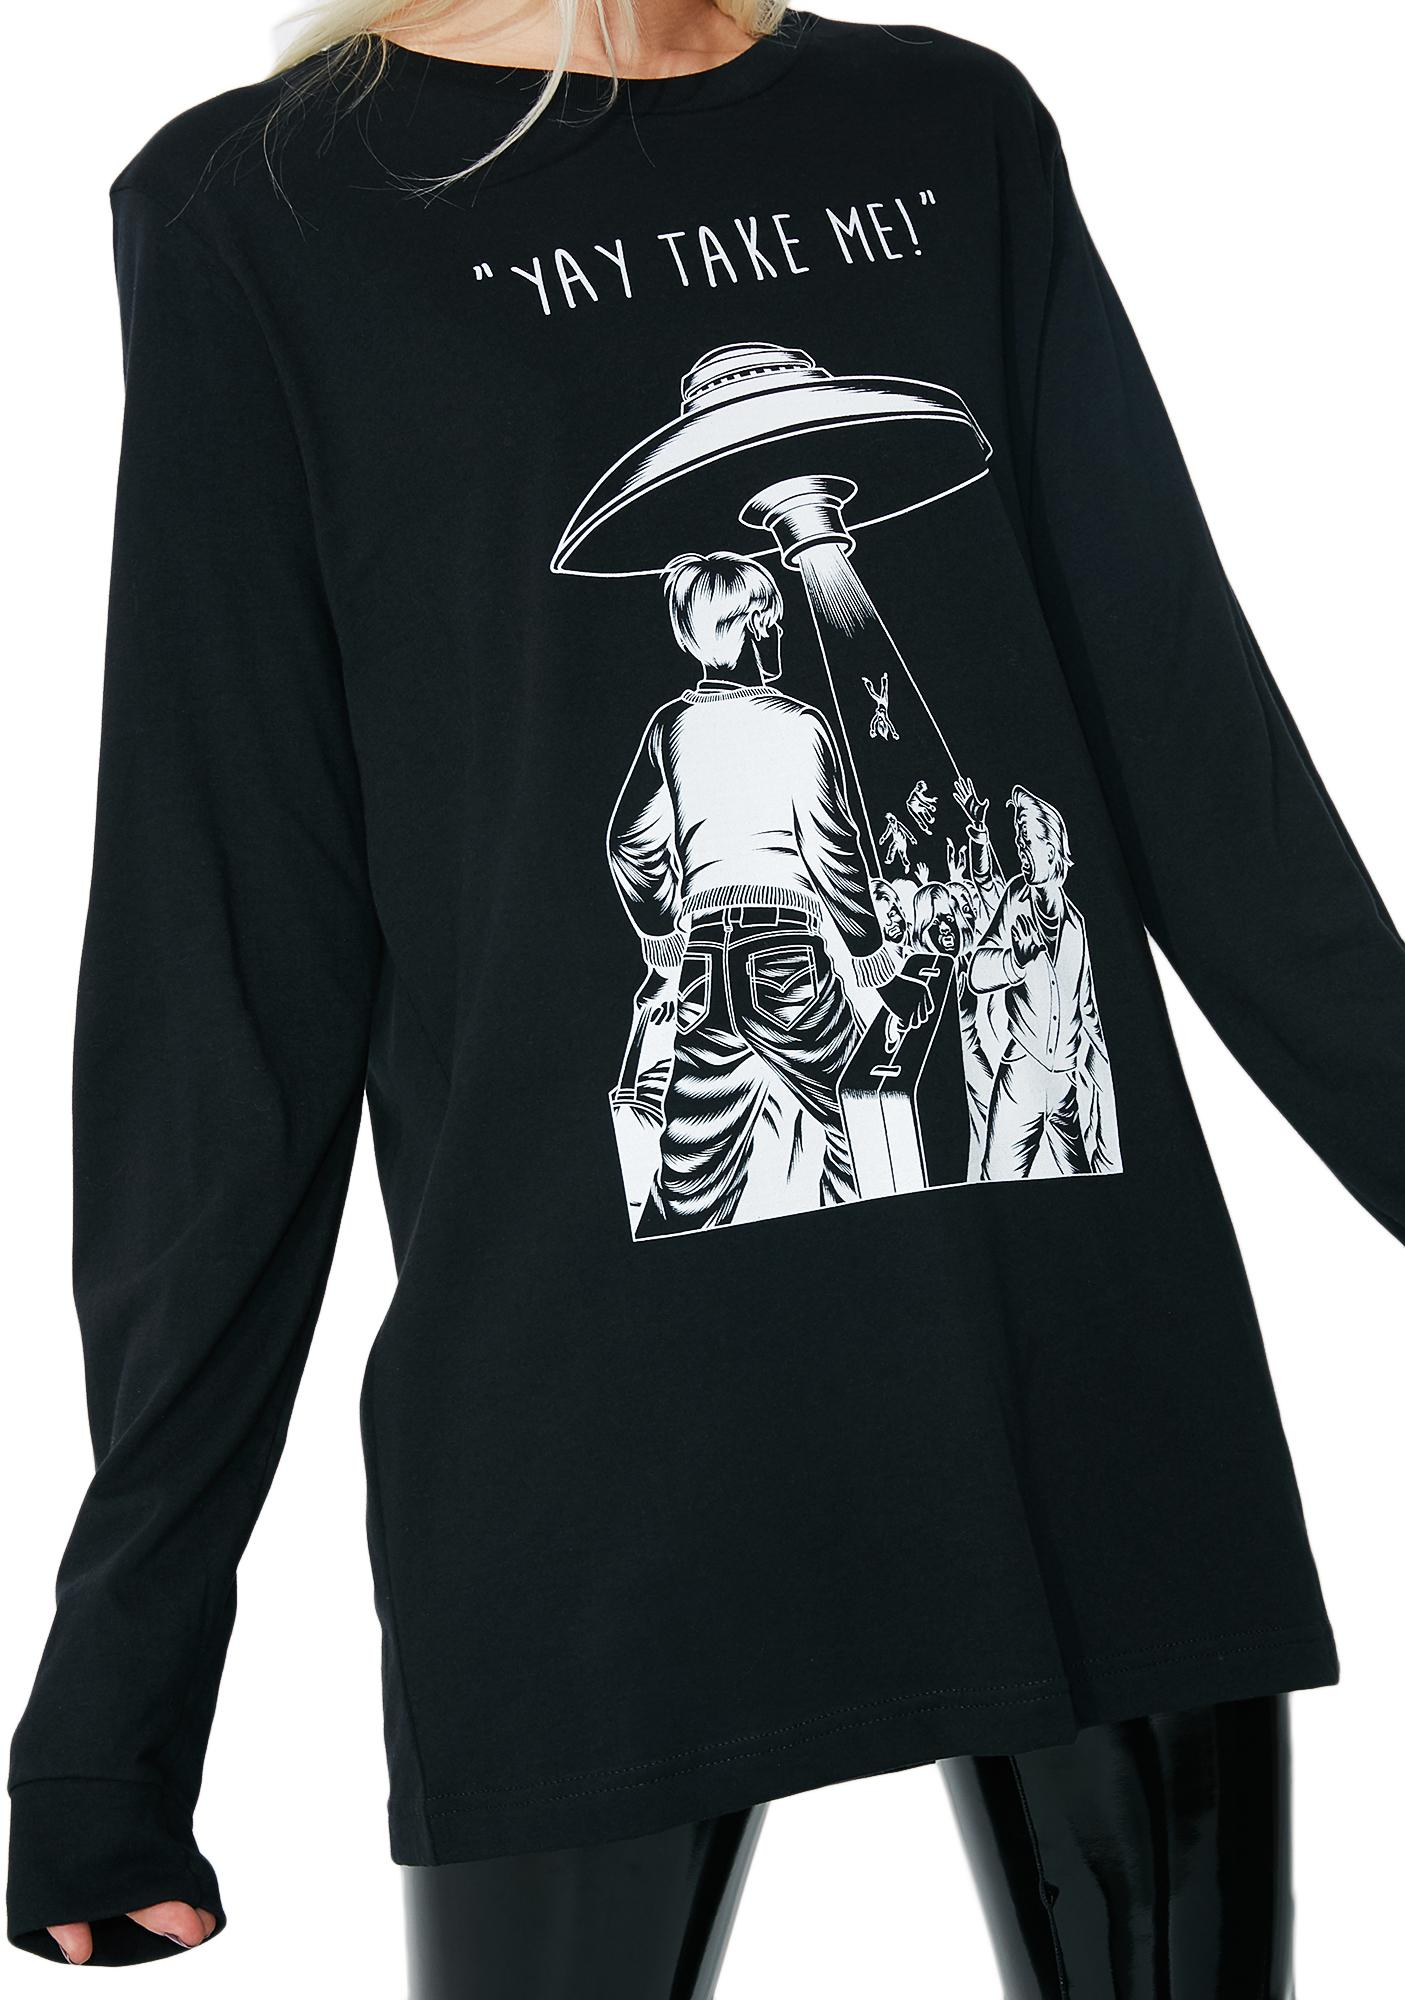 These Americans Alien Tooketh Me Graphic Top